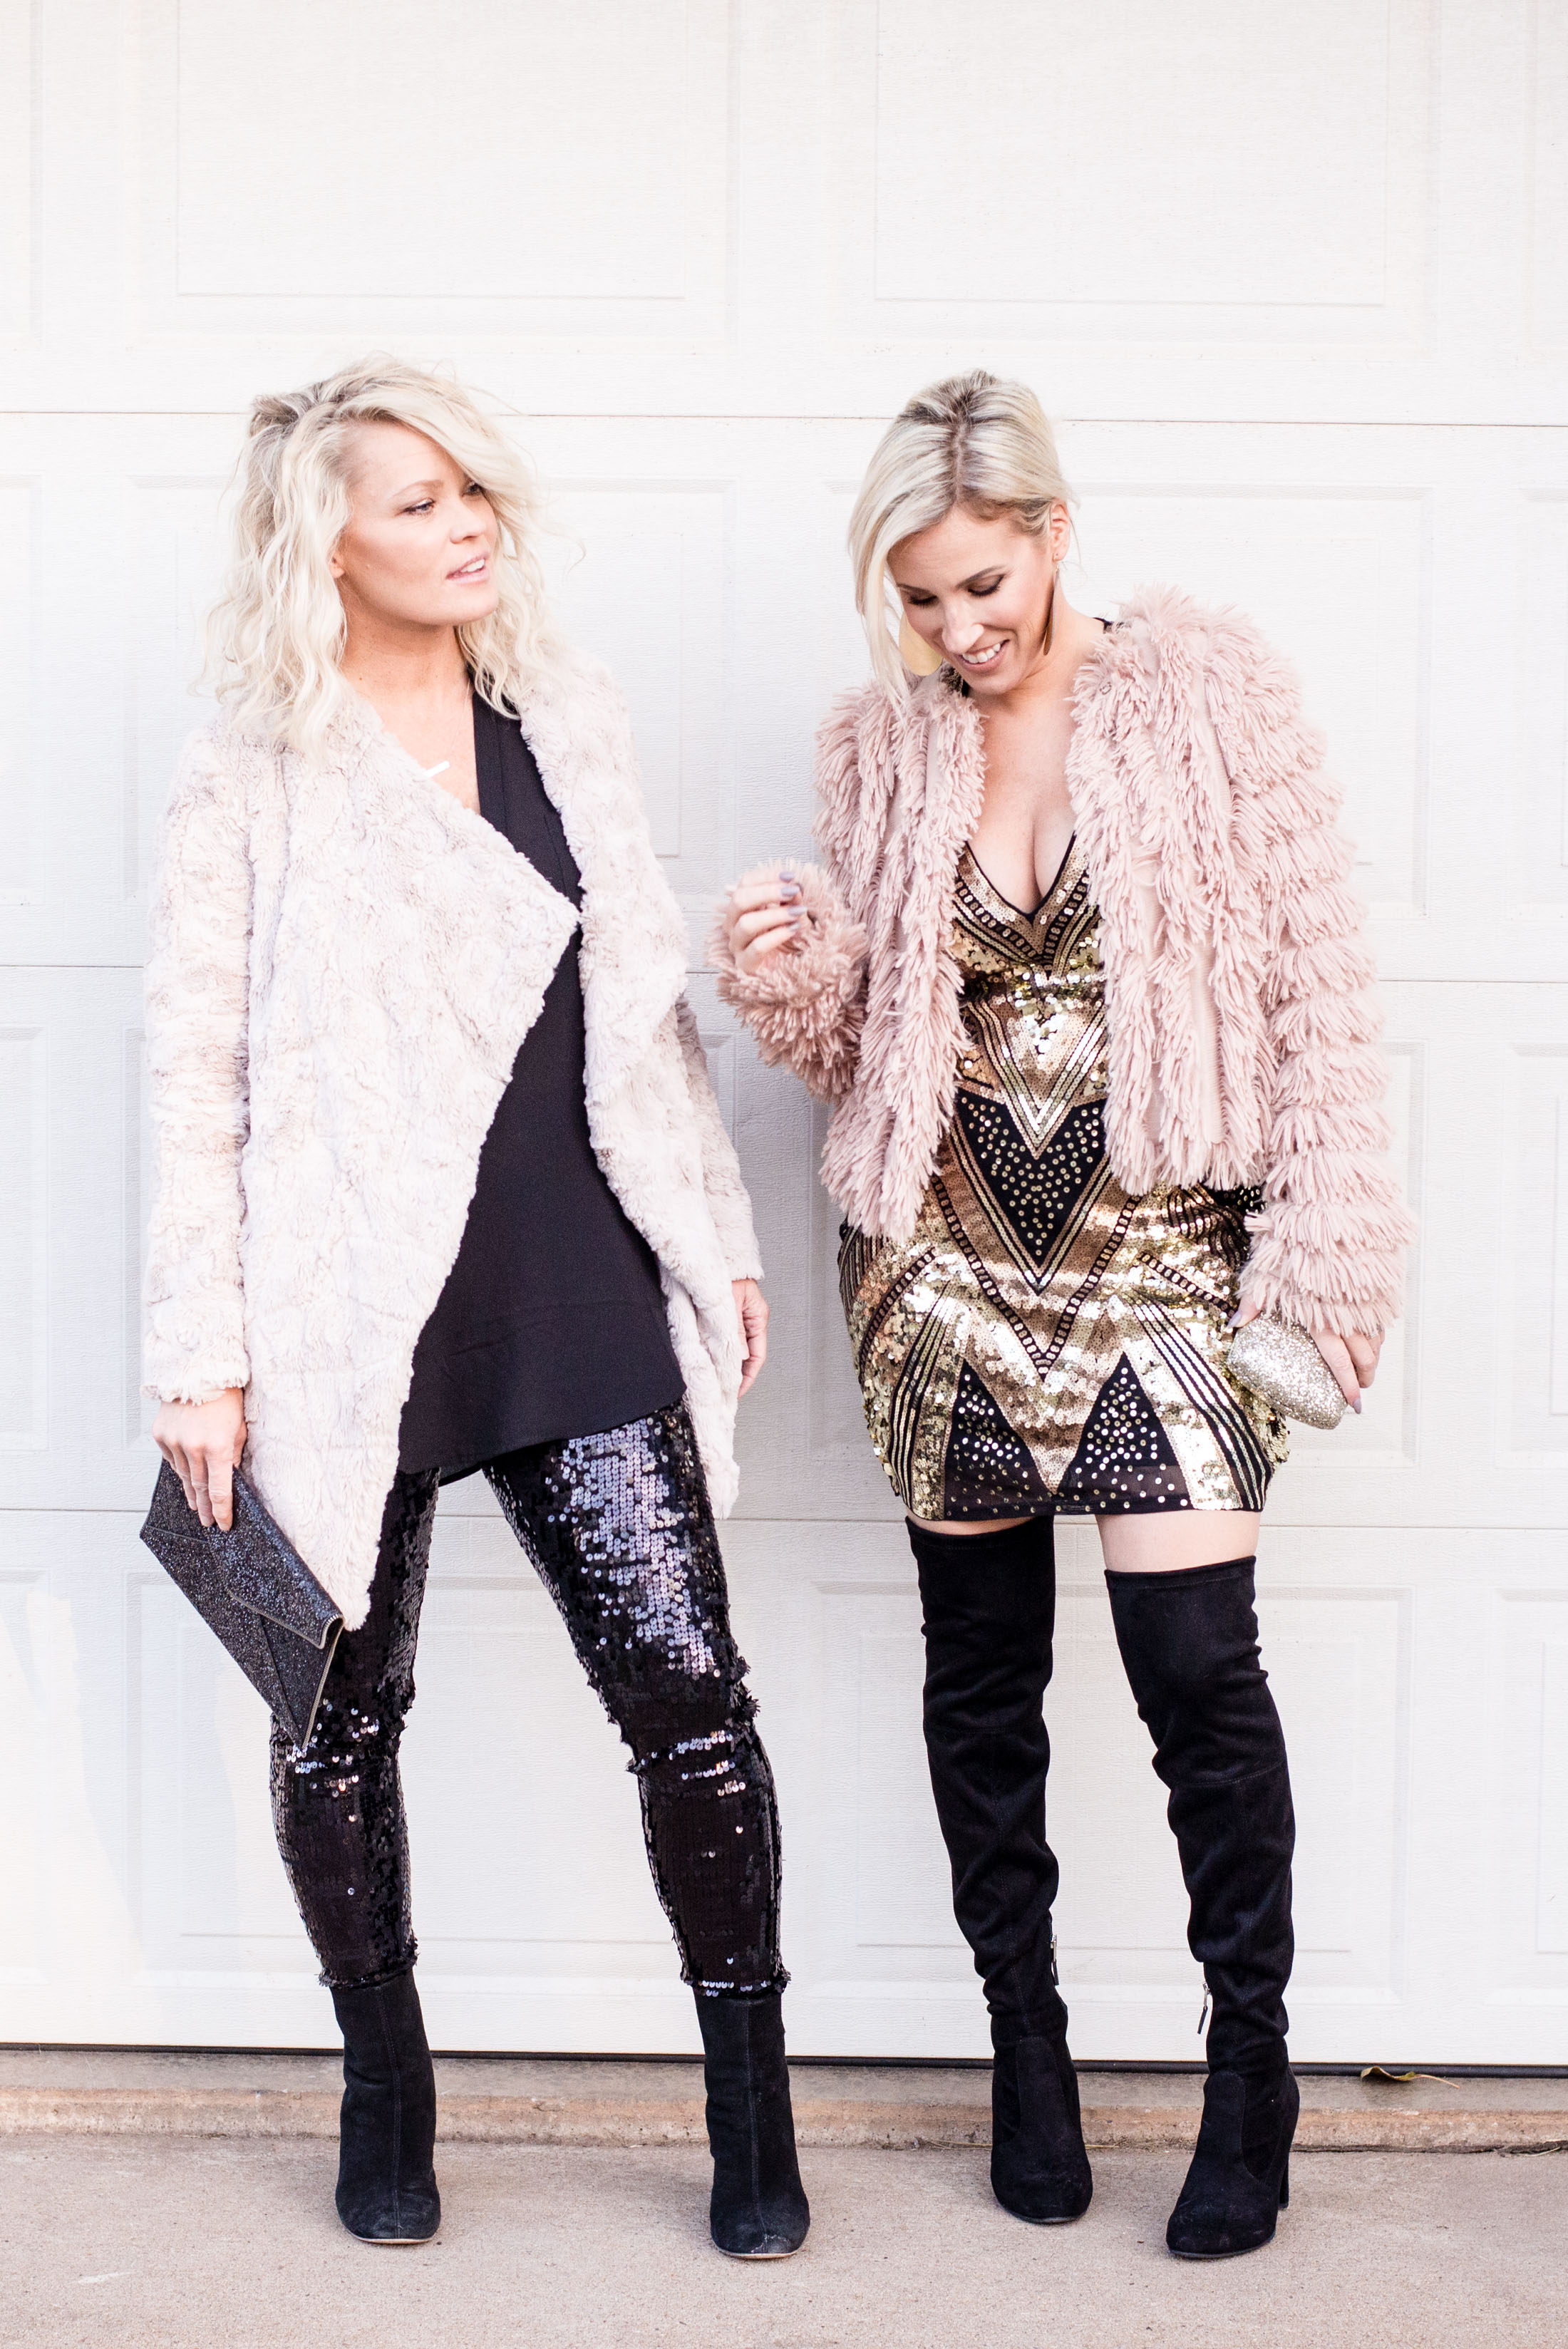 One of our fav affordable and FUN brands, Express, is offering amazing discounts right now...just in time for the holidays. Here are 2 party looks we love.